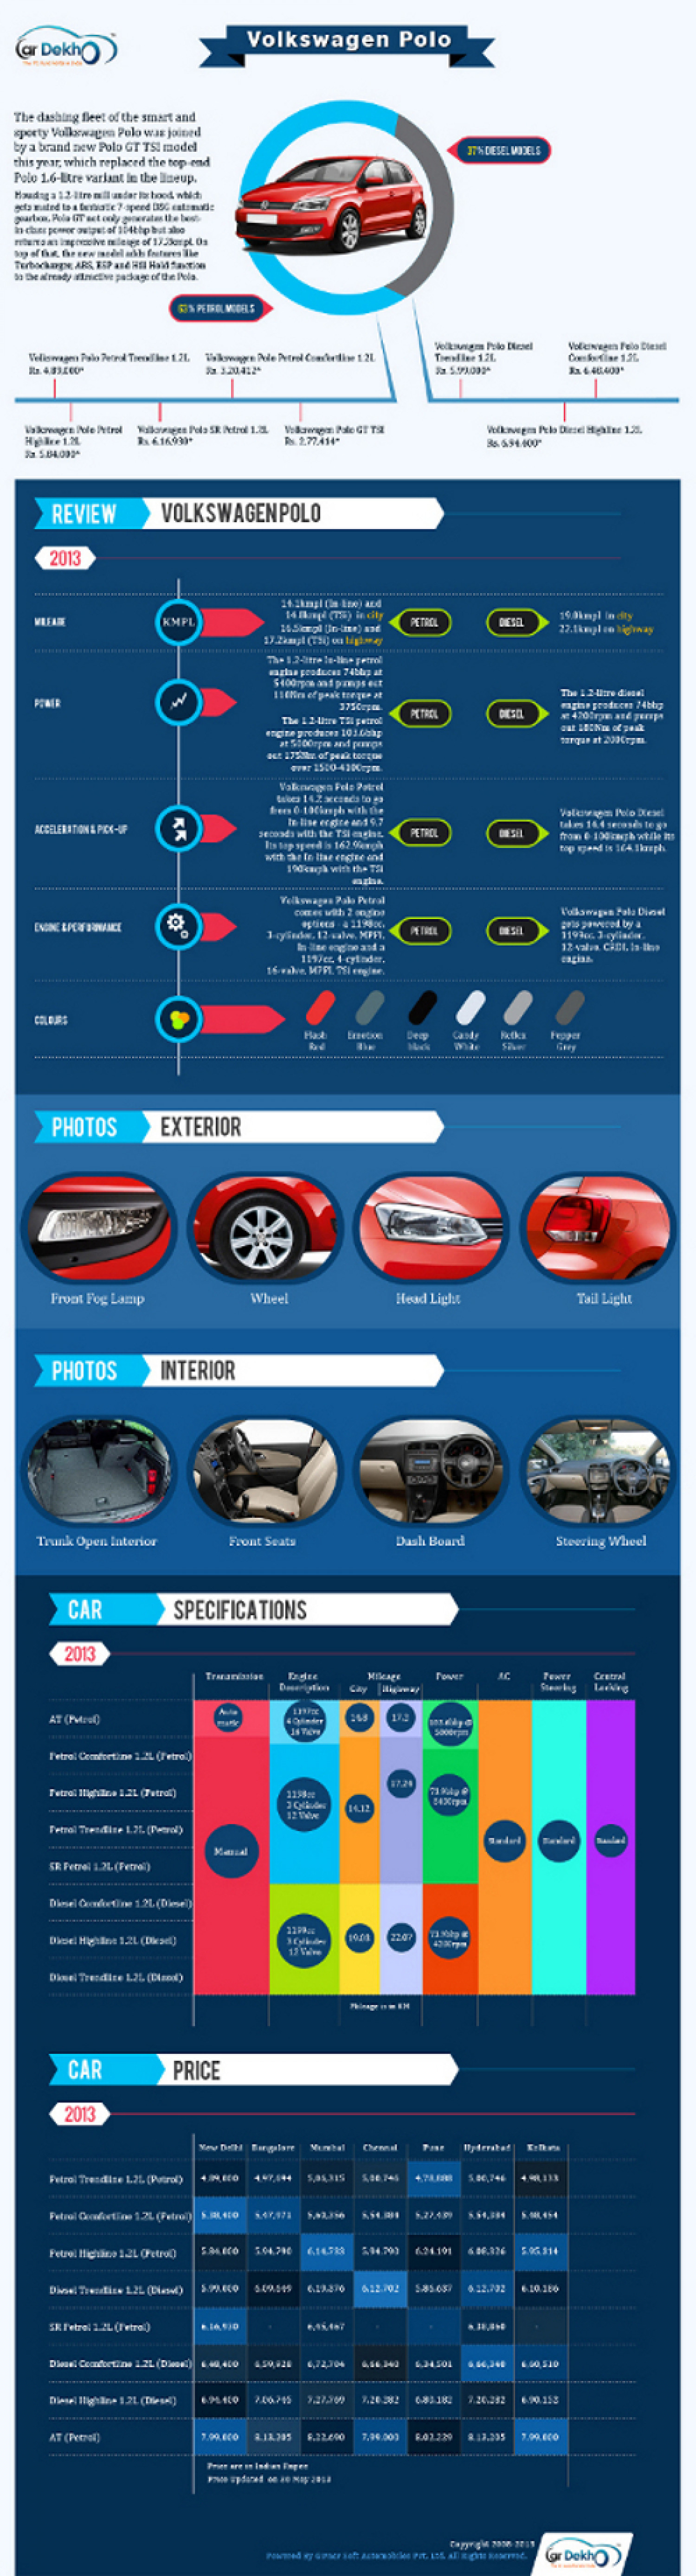 Volkswagen Polo Infographic